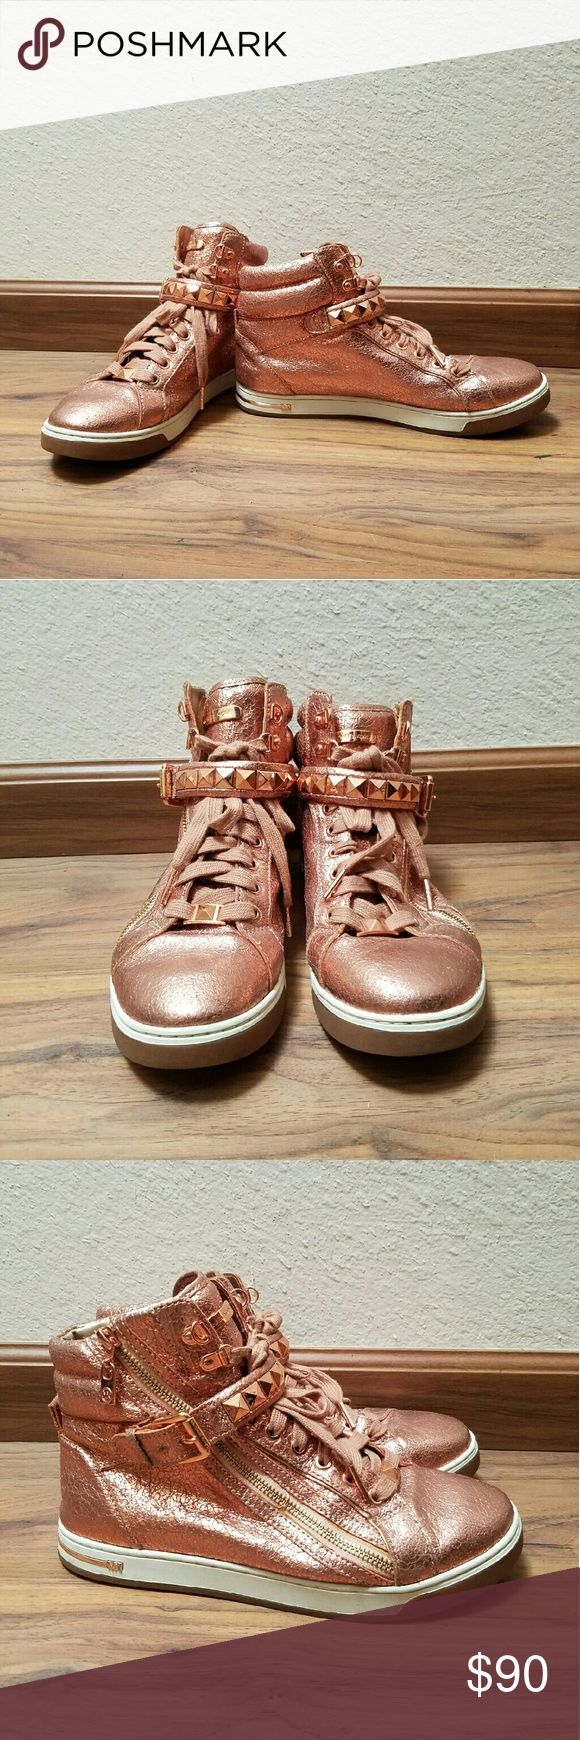 Michael Kors rose gold high top sneakers Michael Kors rose gold high top sneakers. Side zip with studded strap. Worn only a few times. Comes from a smoke free and pet free home. Michael Kors Shoes Athletic Shoes